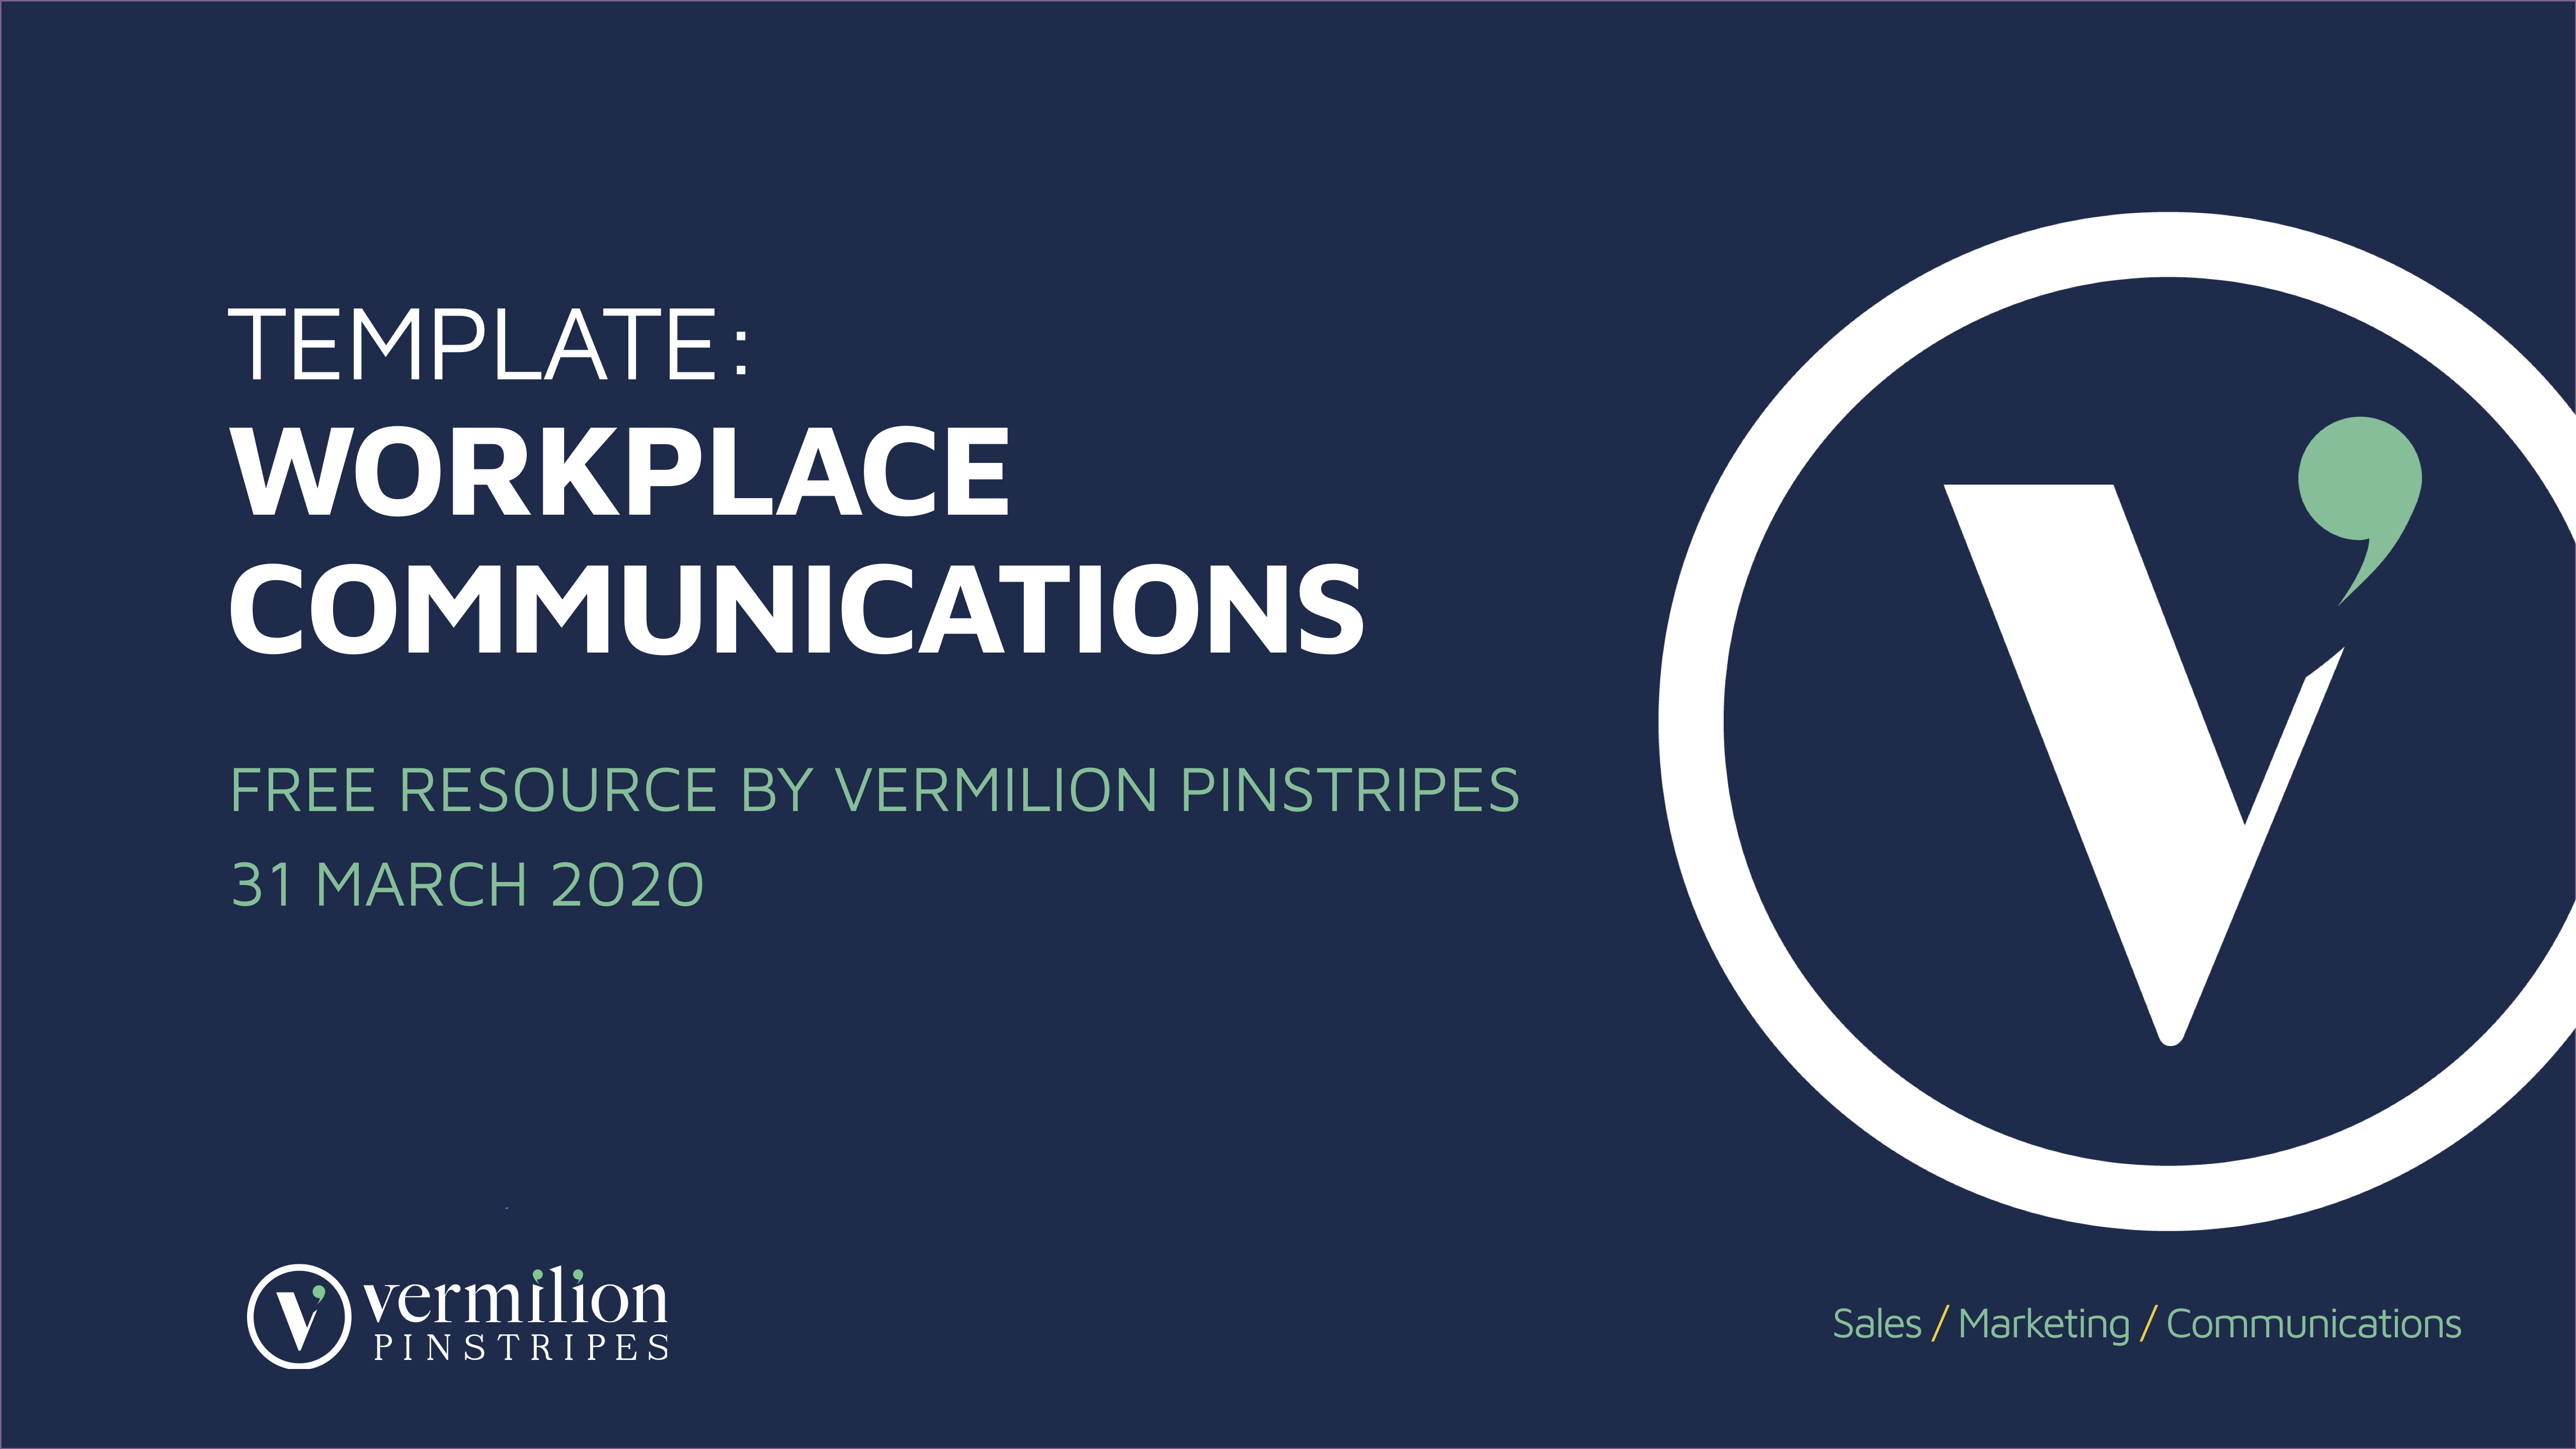 Workplace communications template, free resource by Vermilion Pinstripes